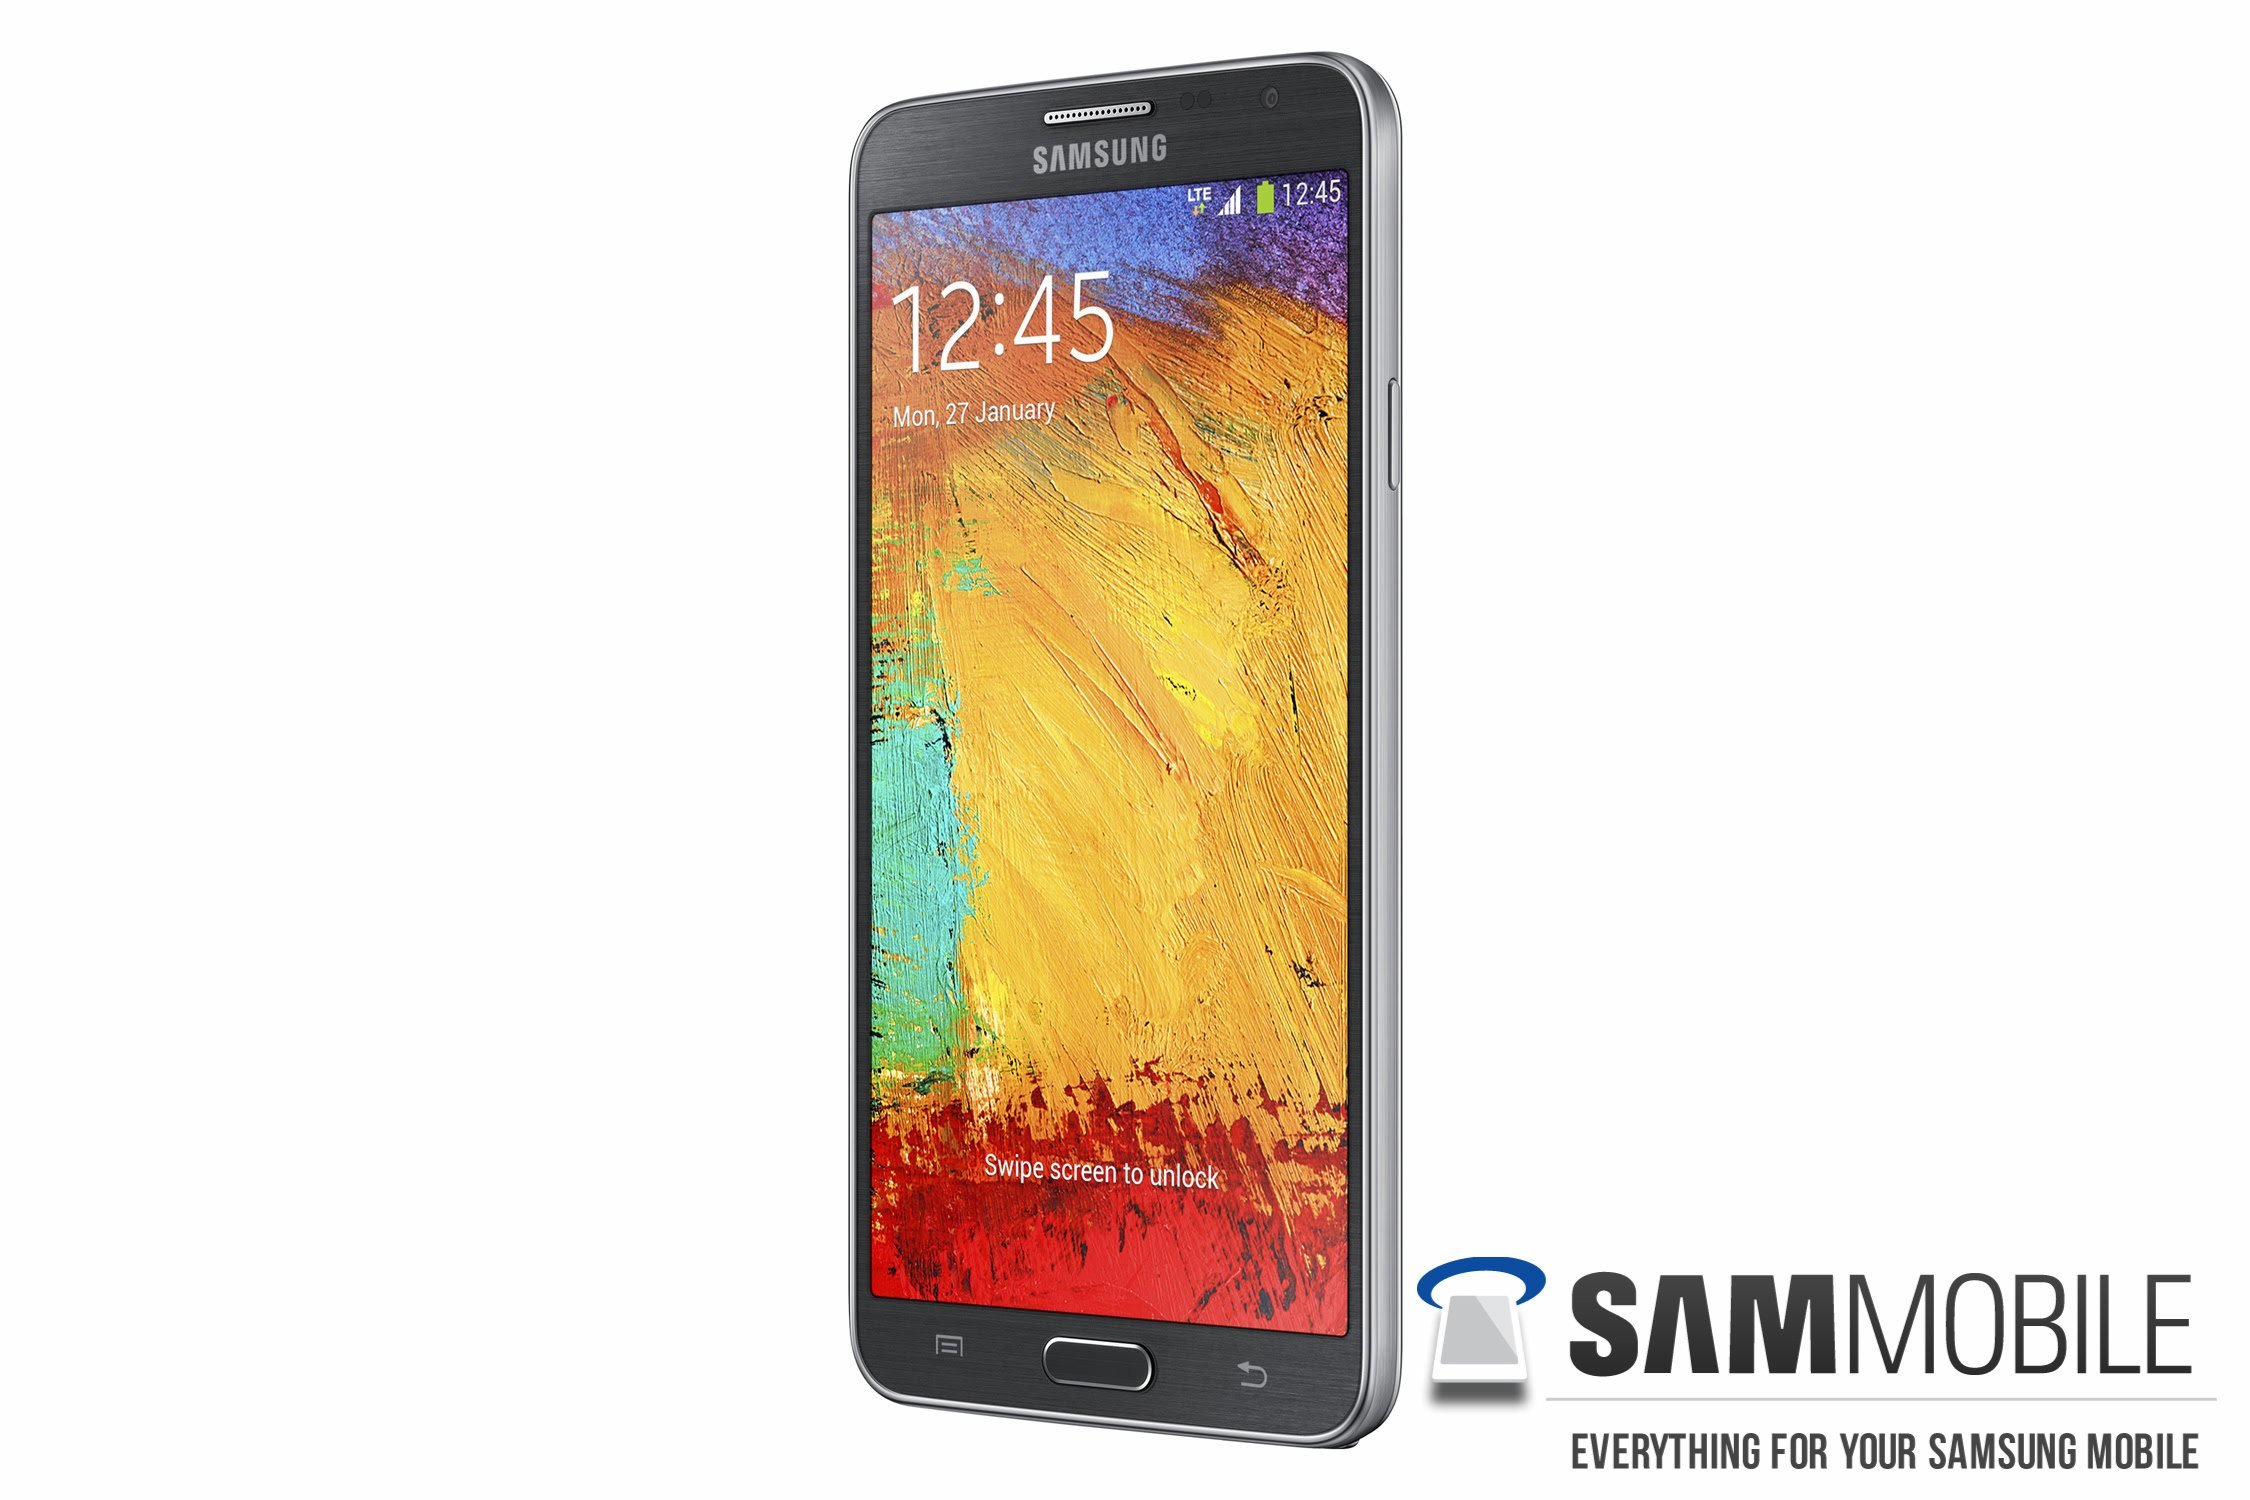 GALAXY Note 3 NEO SamMobile 2